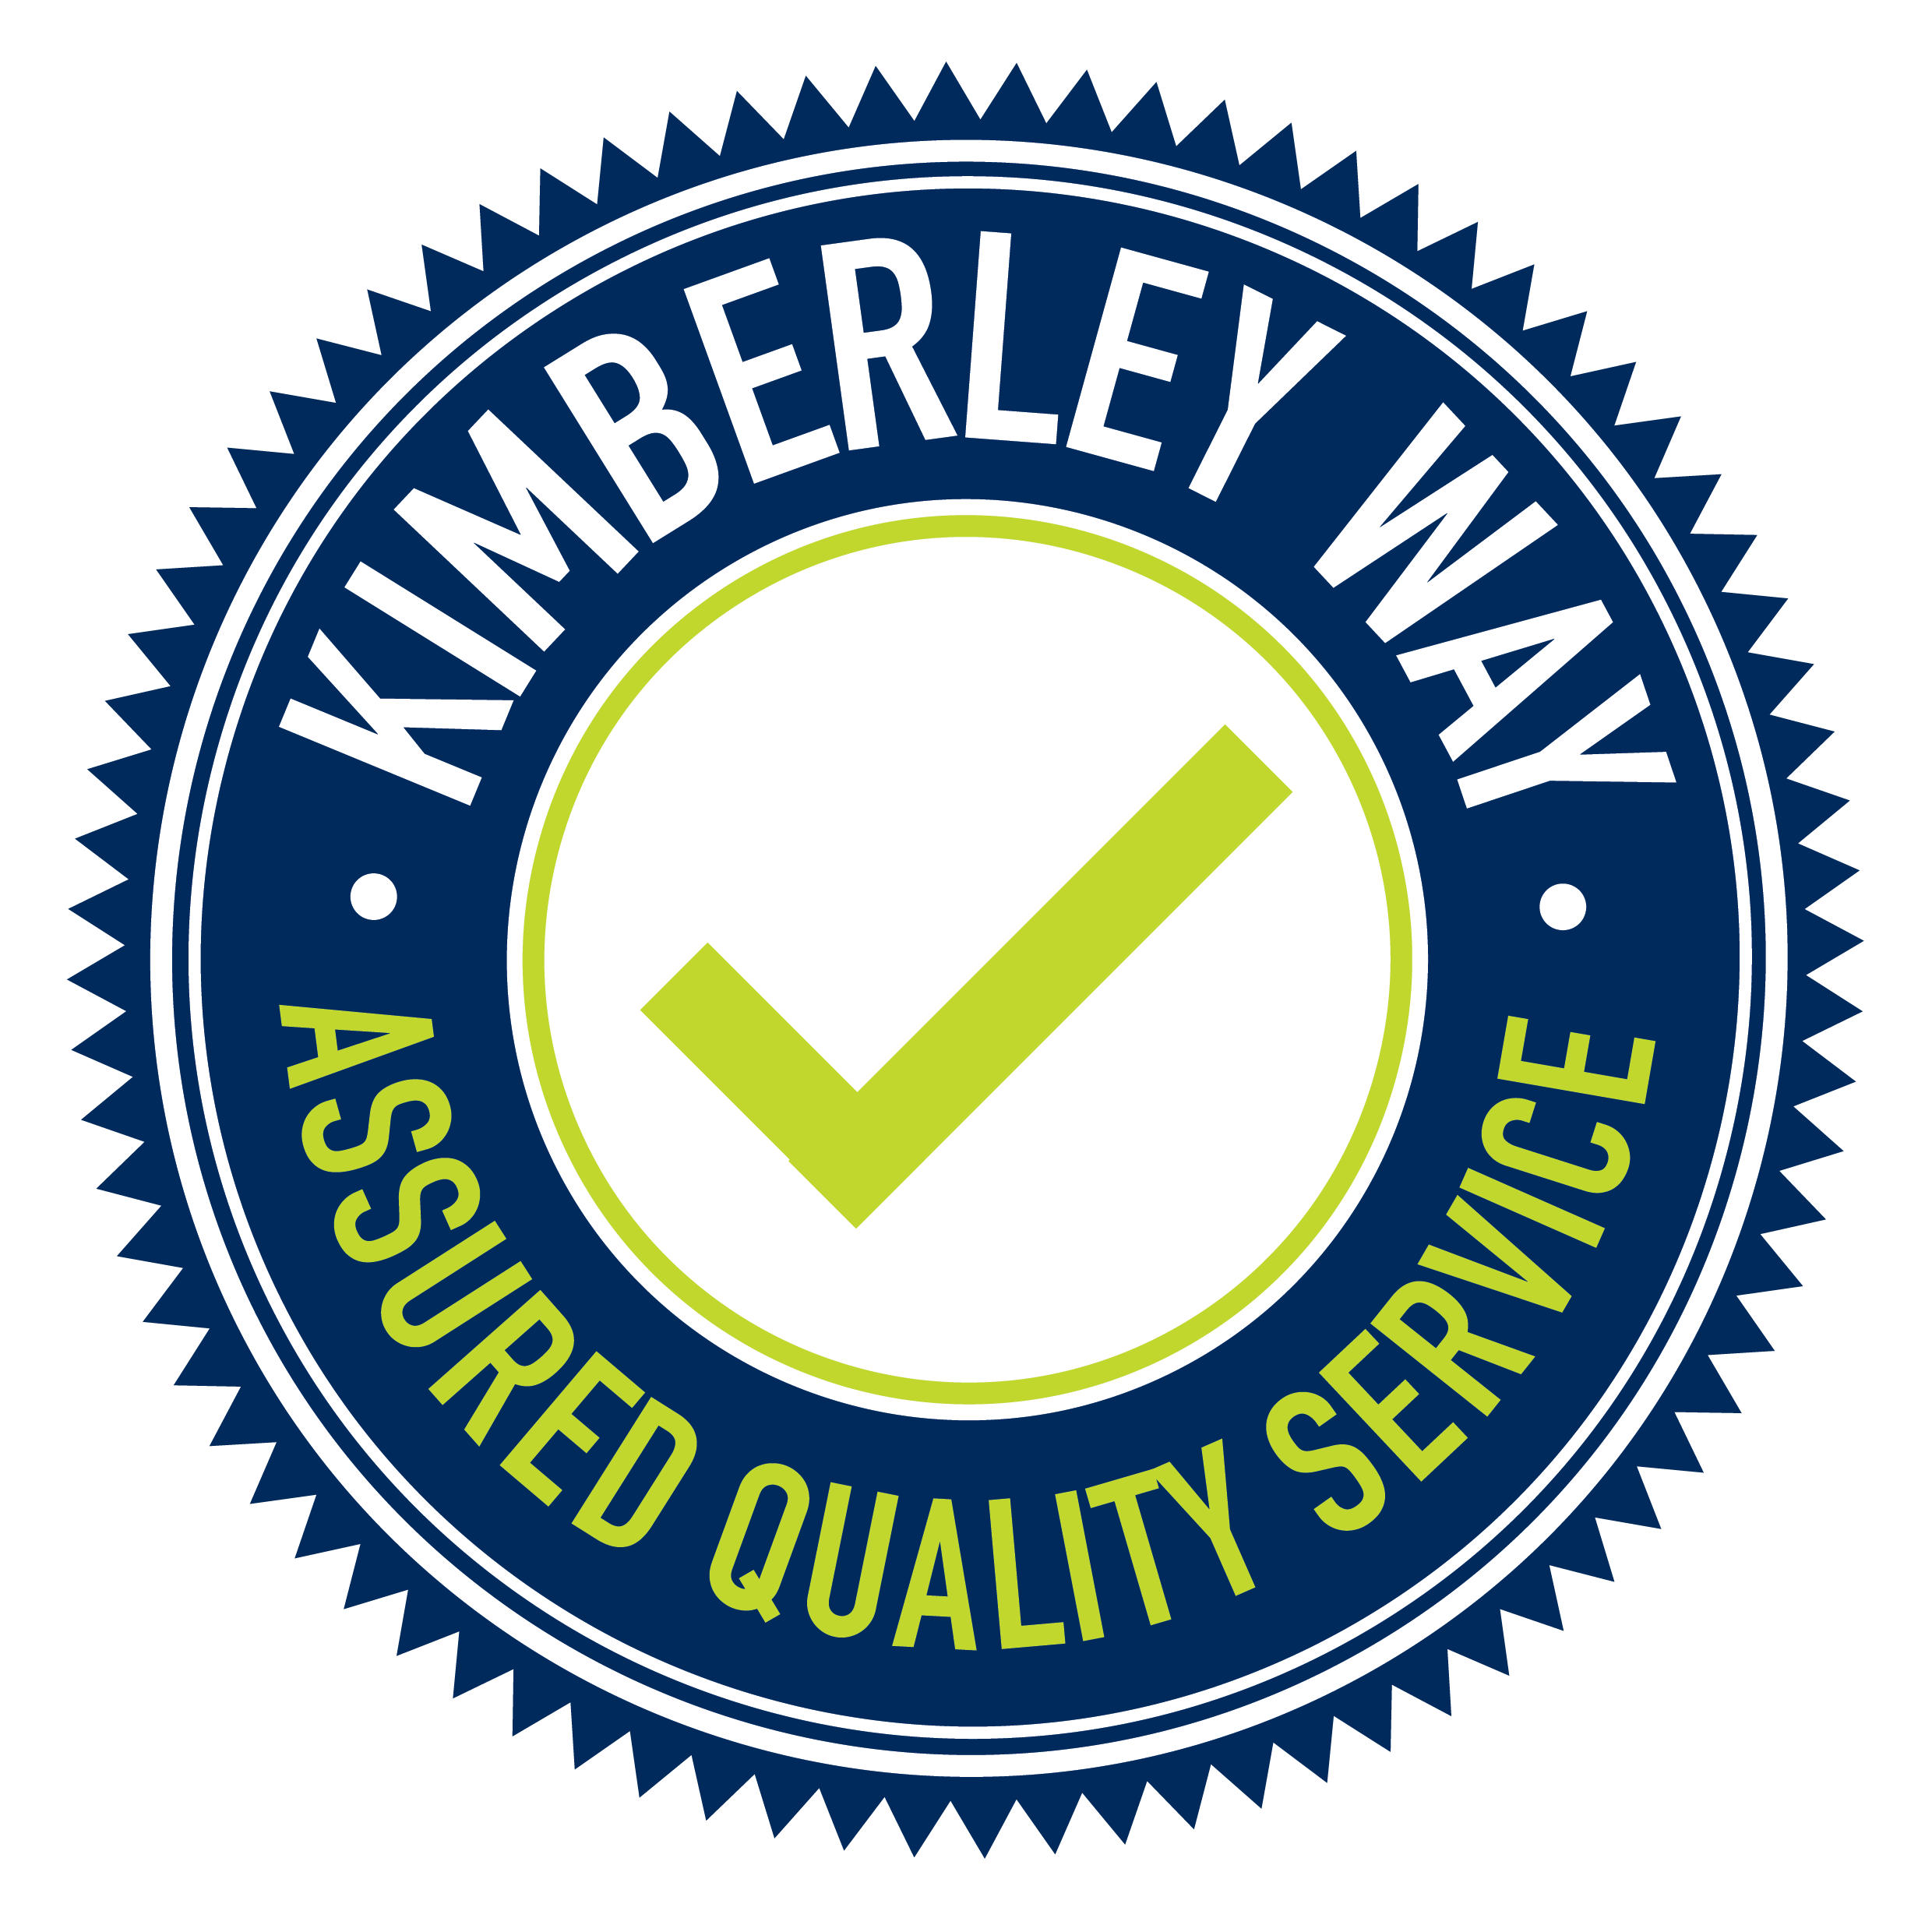 Kimberley Way - Assured Customer Service